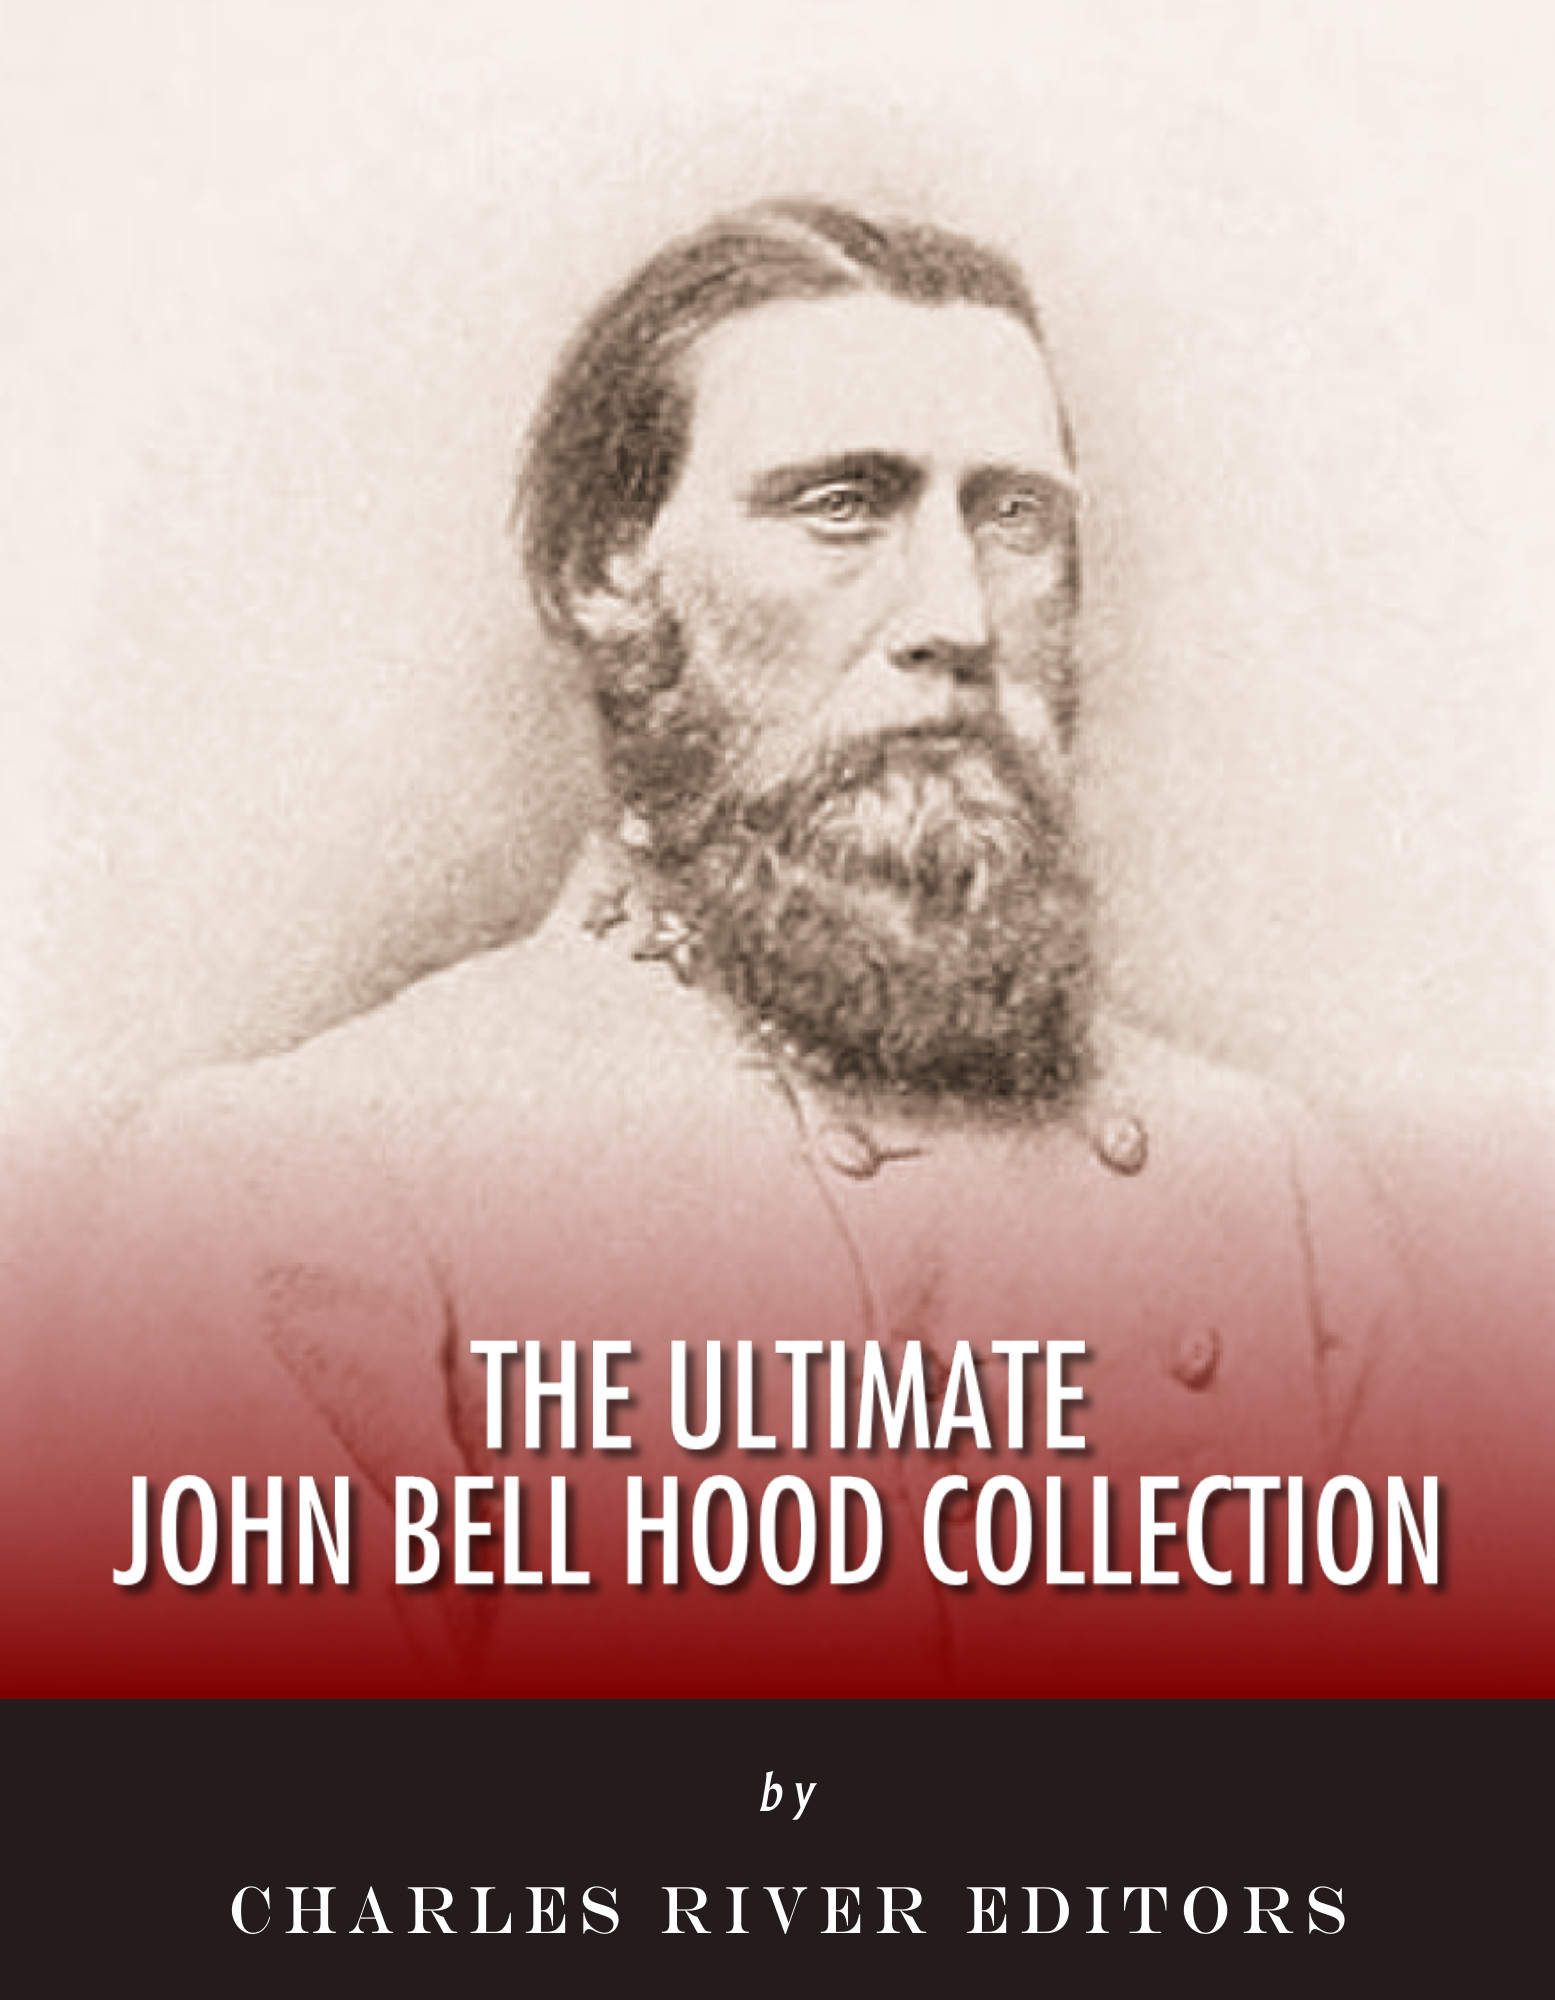 The Ultimate John Bell Hood Collection